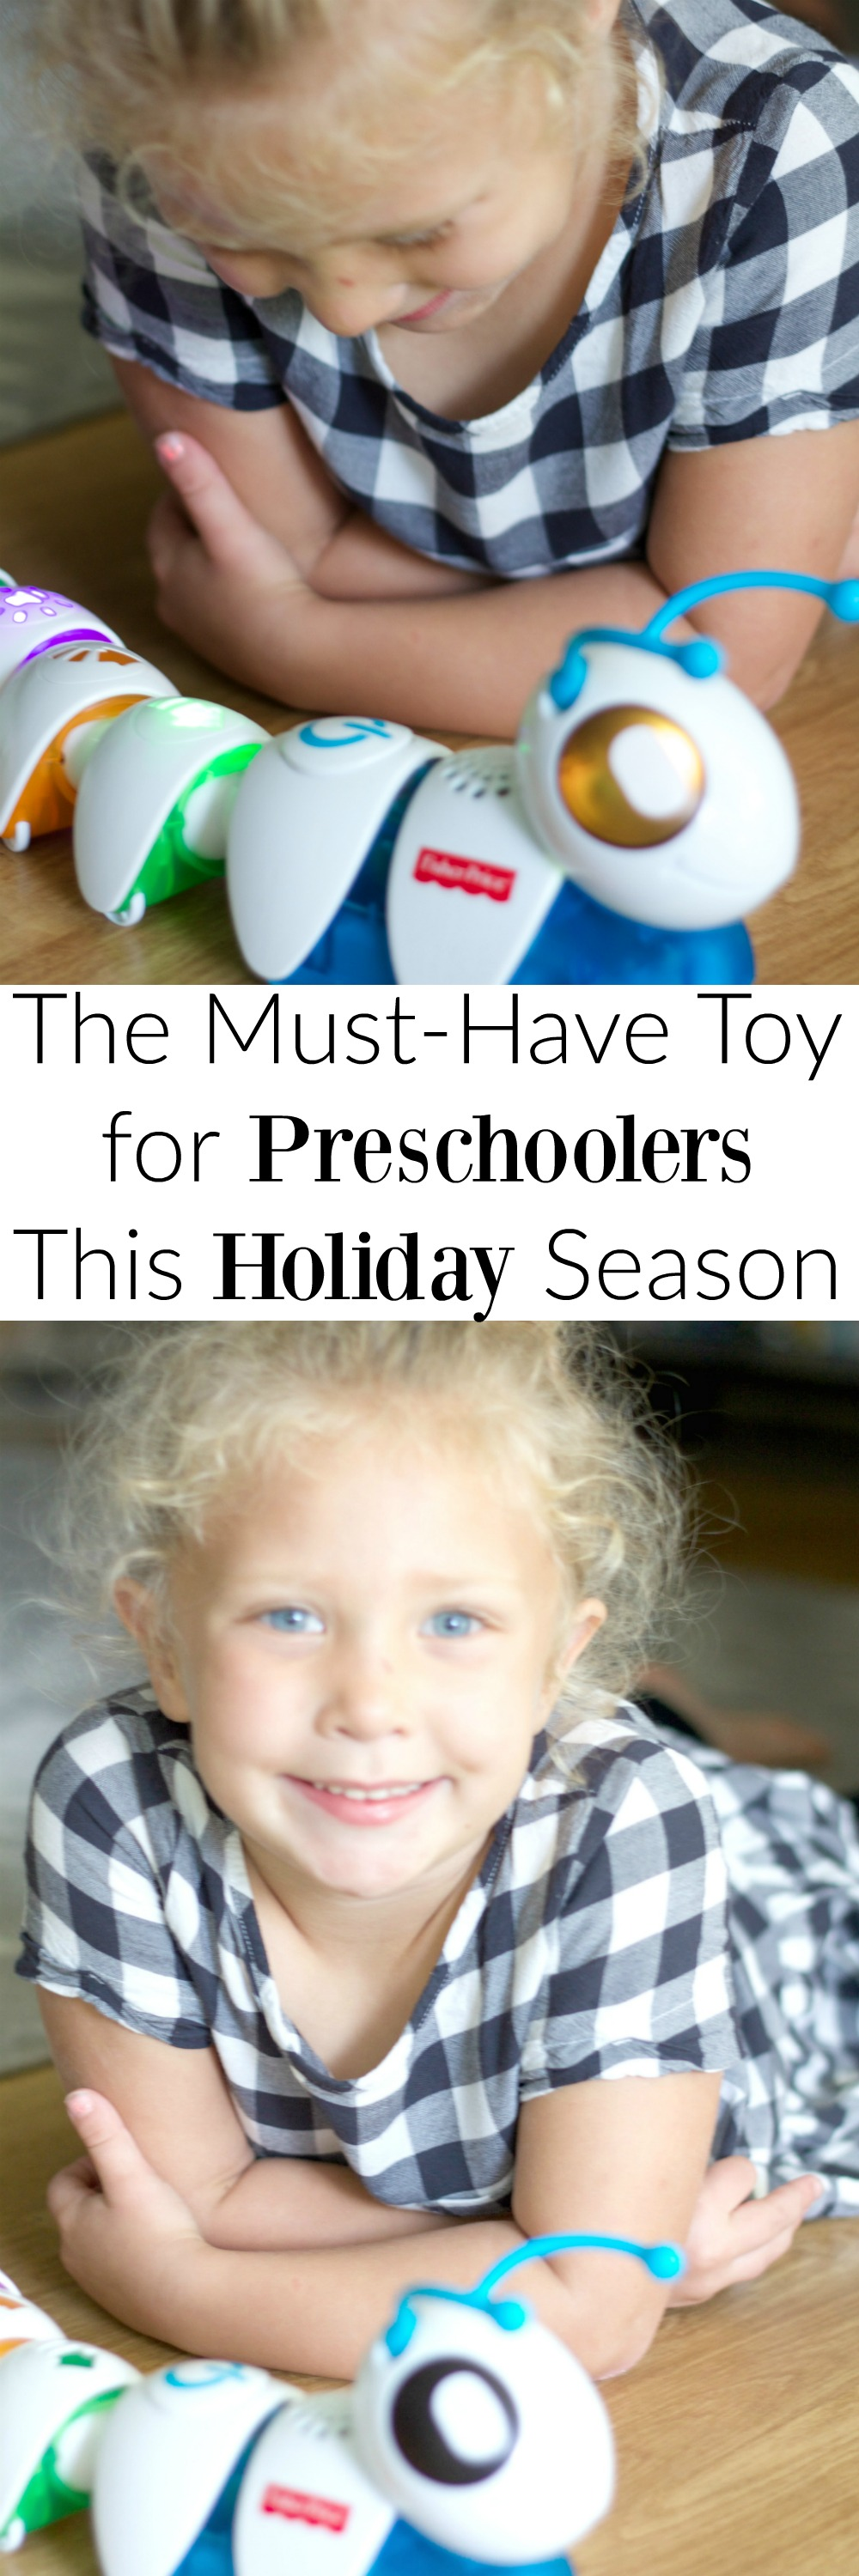 The Must-Have Toy for Preschoolers This Holiday Season